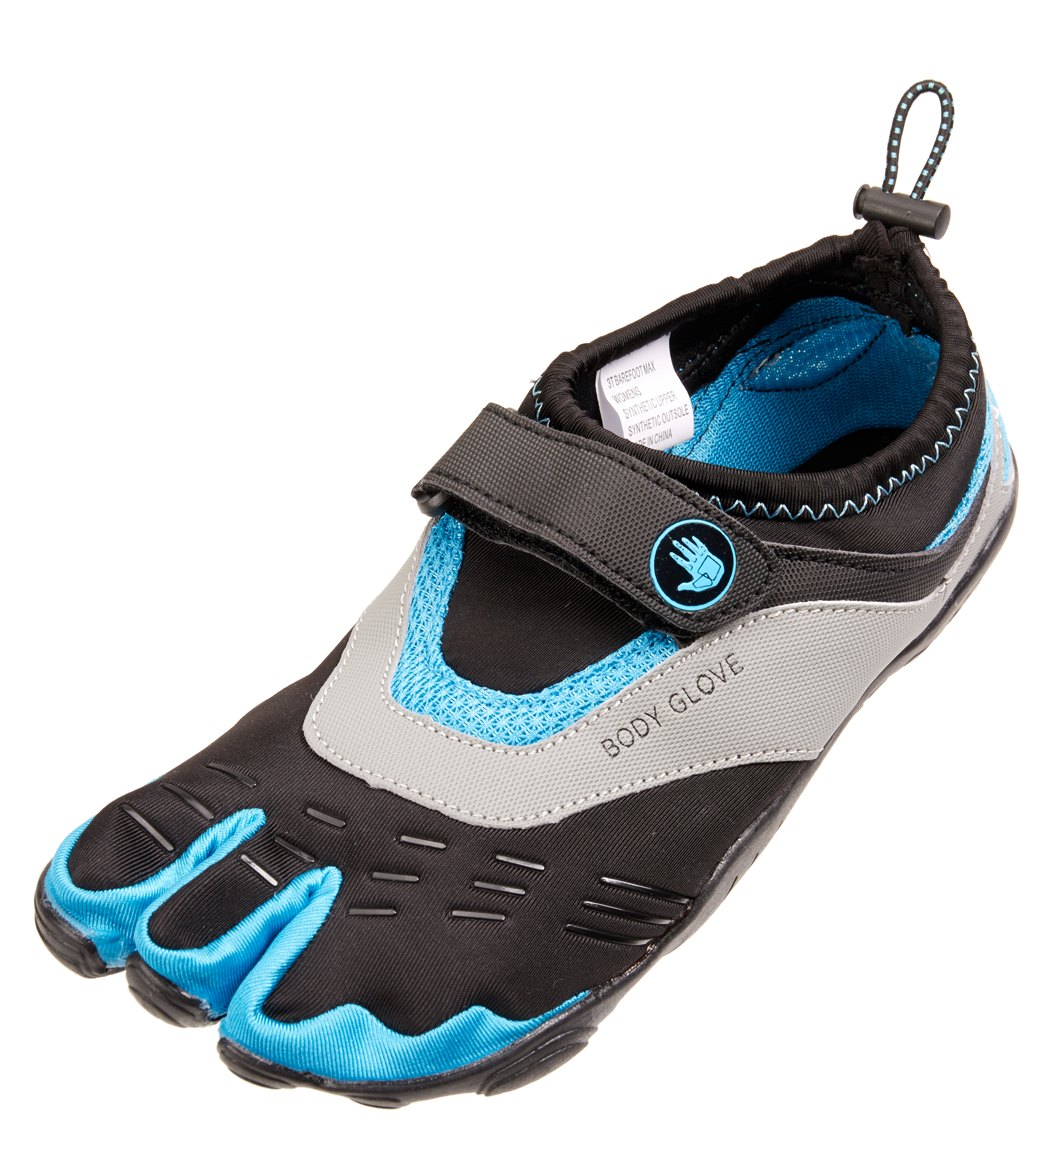 Women's 3t Barefoot Max Water Shoe